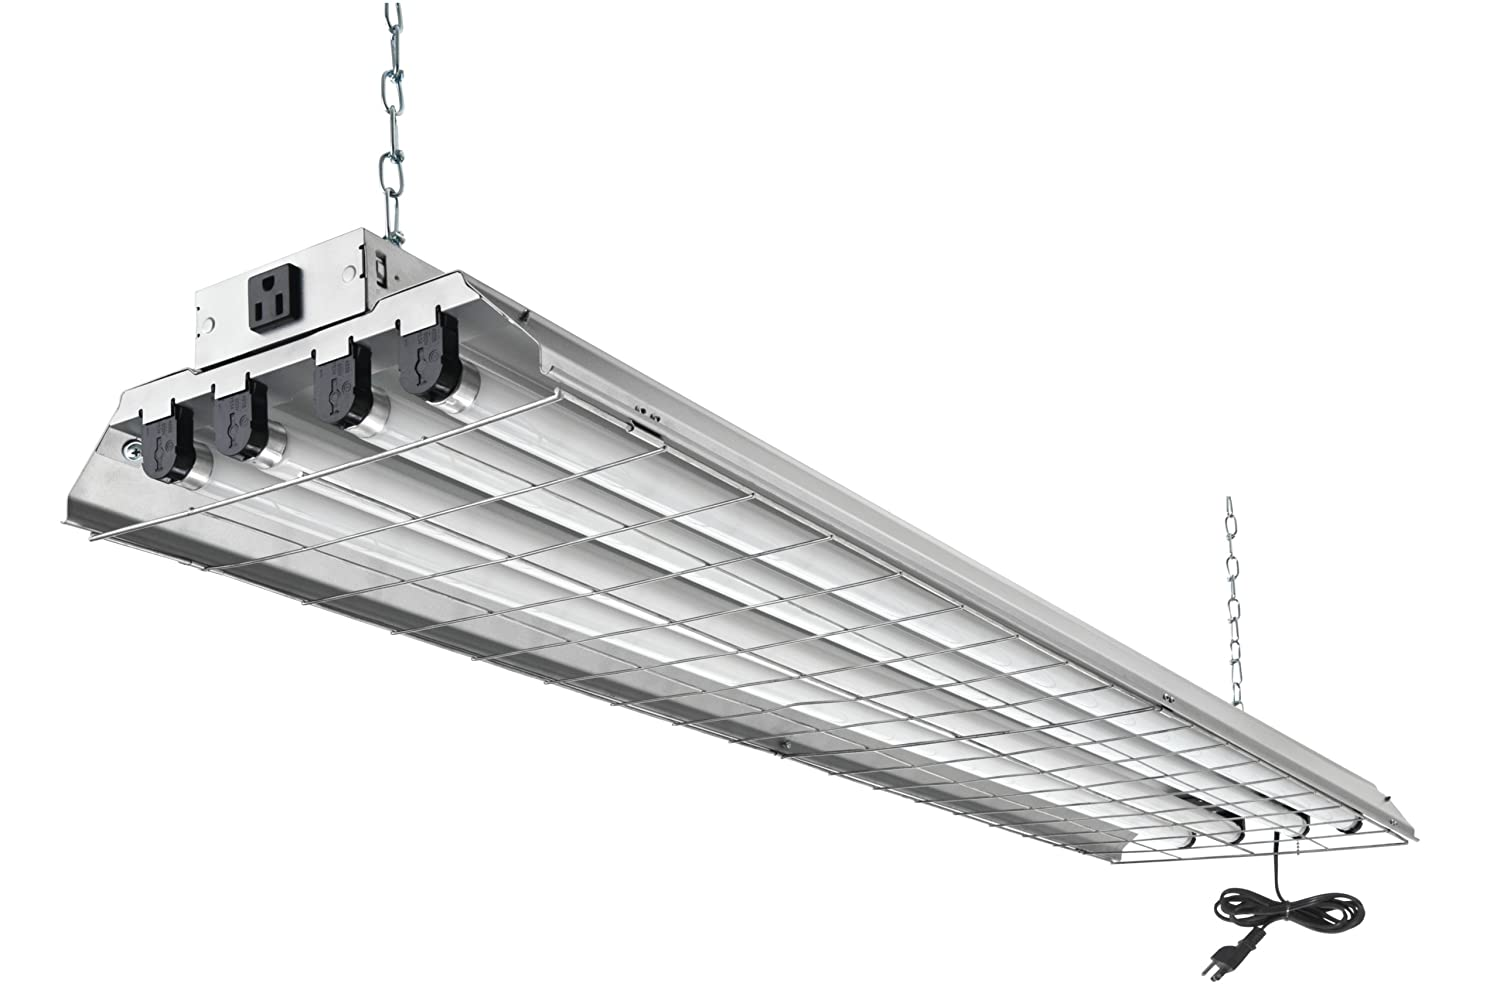 Amazon lithonia lighting 1284grd re 4 light heavy duty amazon lithonia lighting 1284grd re 4 light heavy duty shoplight home improvement arubaitofo Image collections